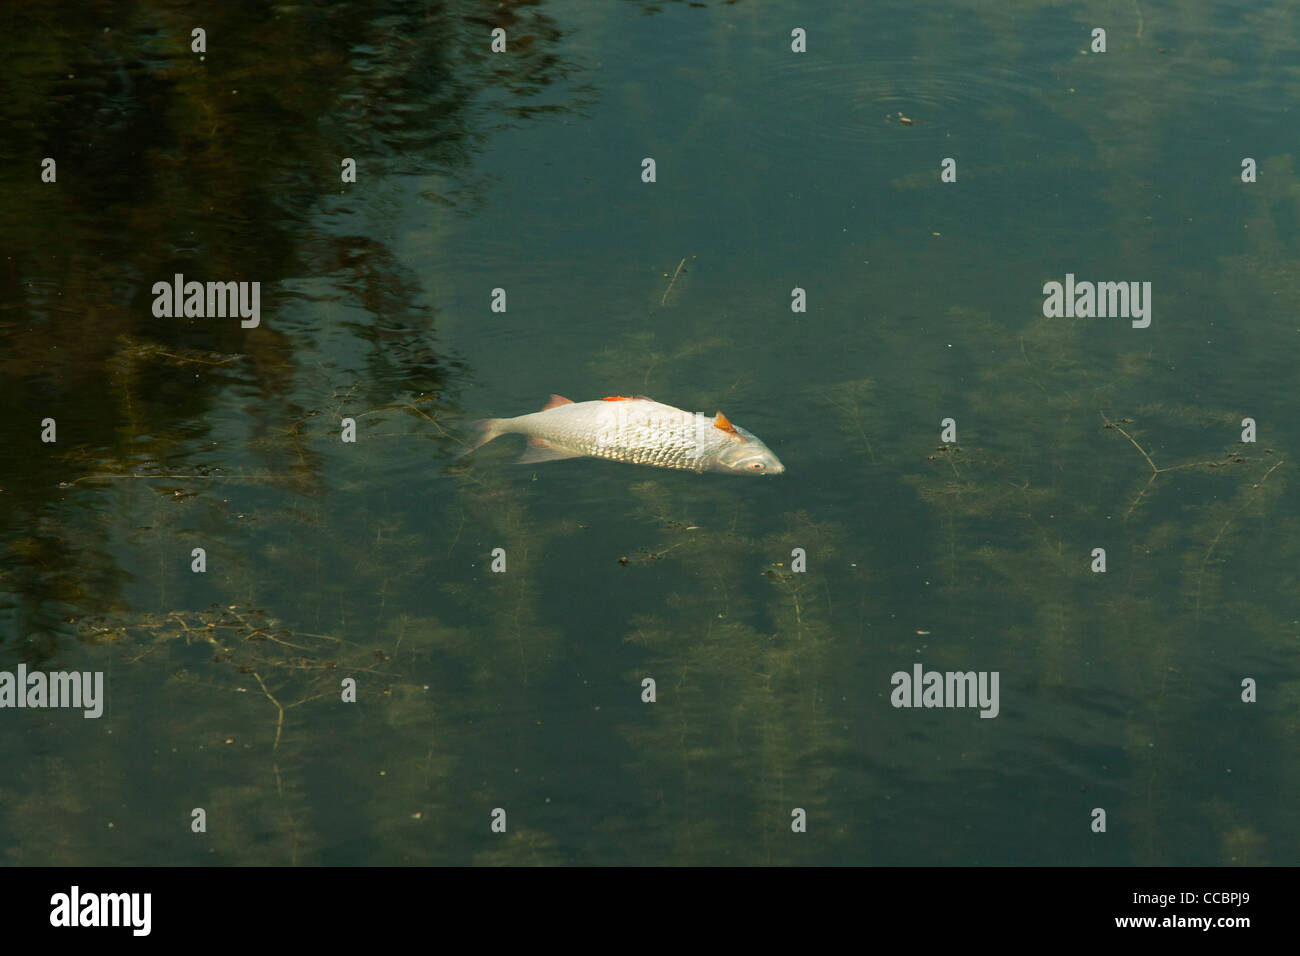 Dead fish floating in pond - Stock Image